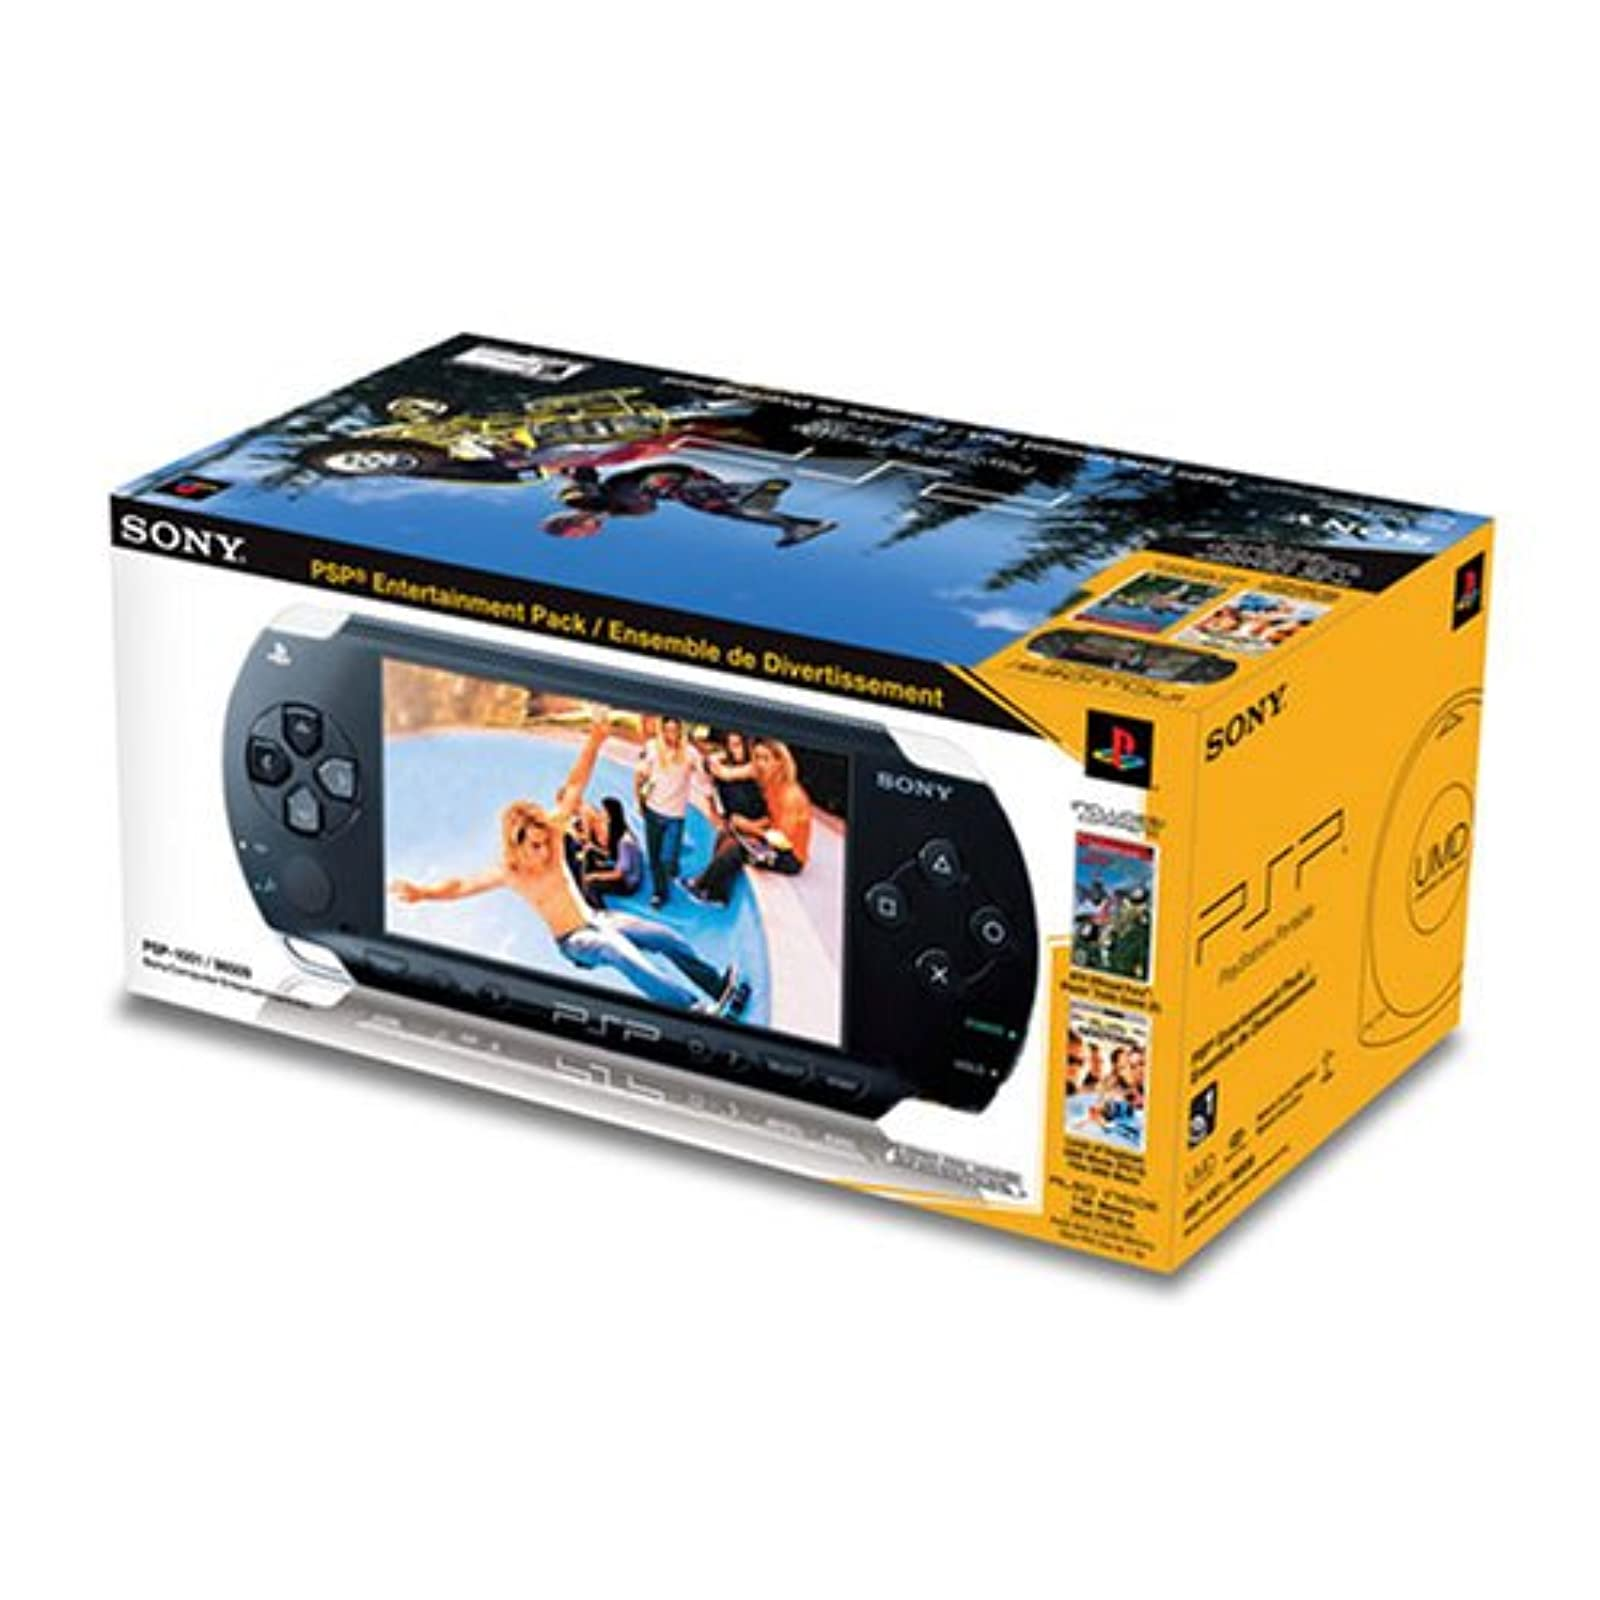 PSP 1000 PlayStation Portable Entertainment Pack